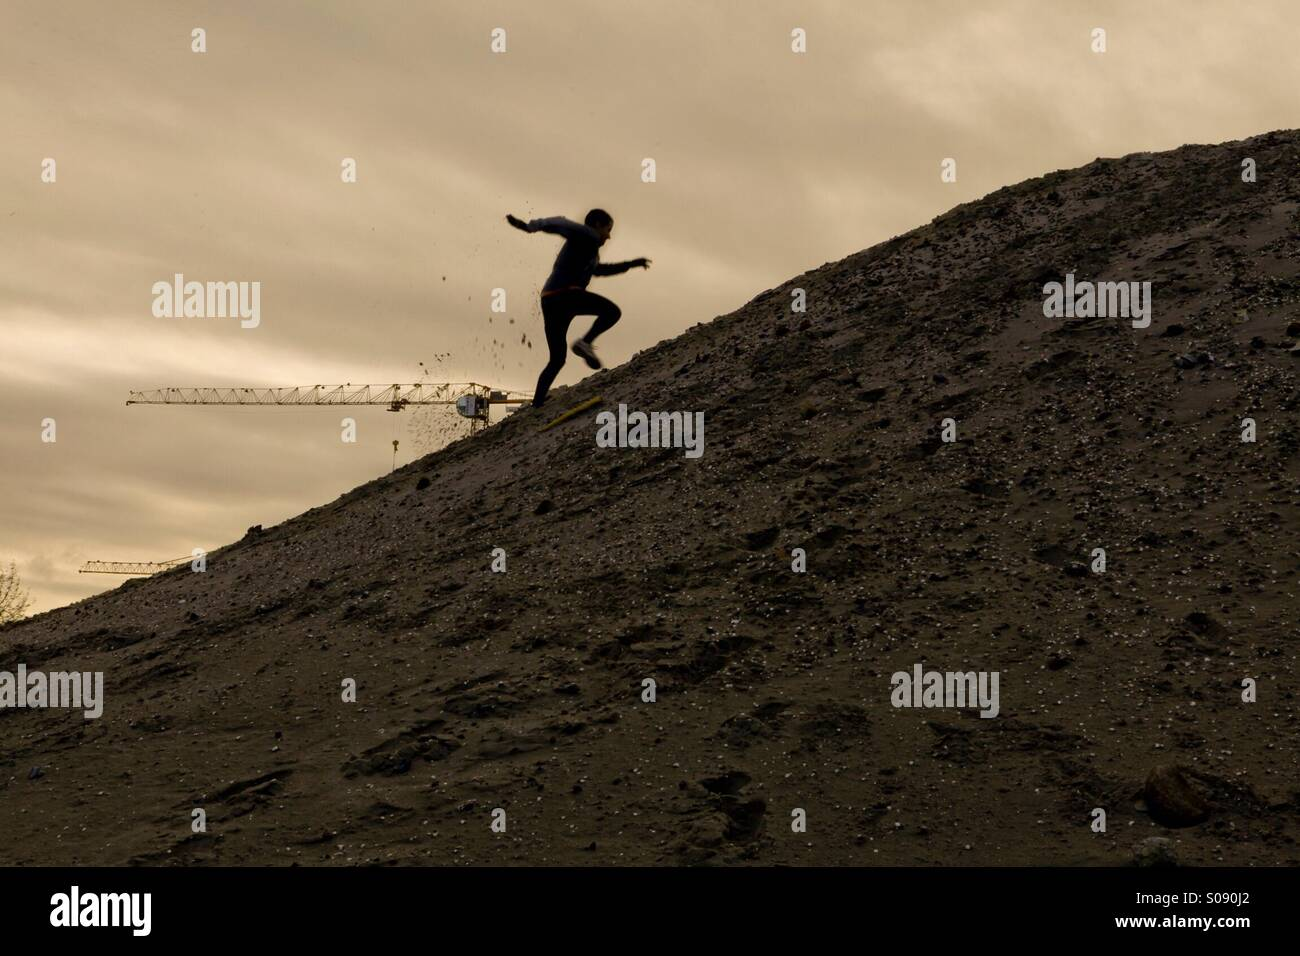 Running homme Photo Stock